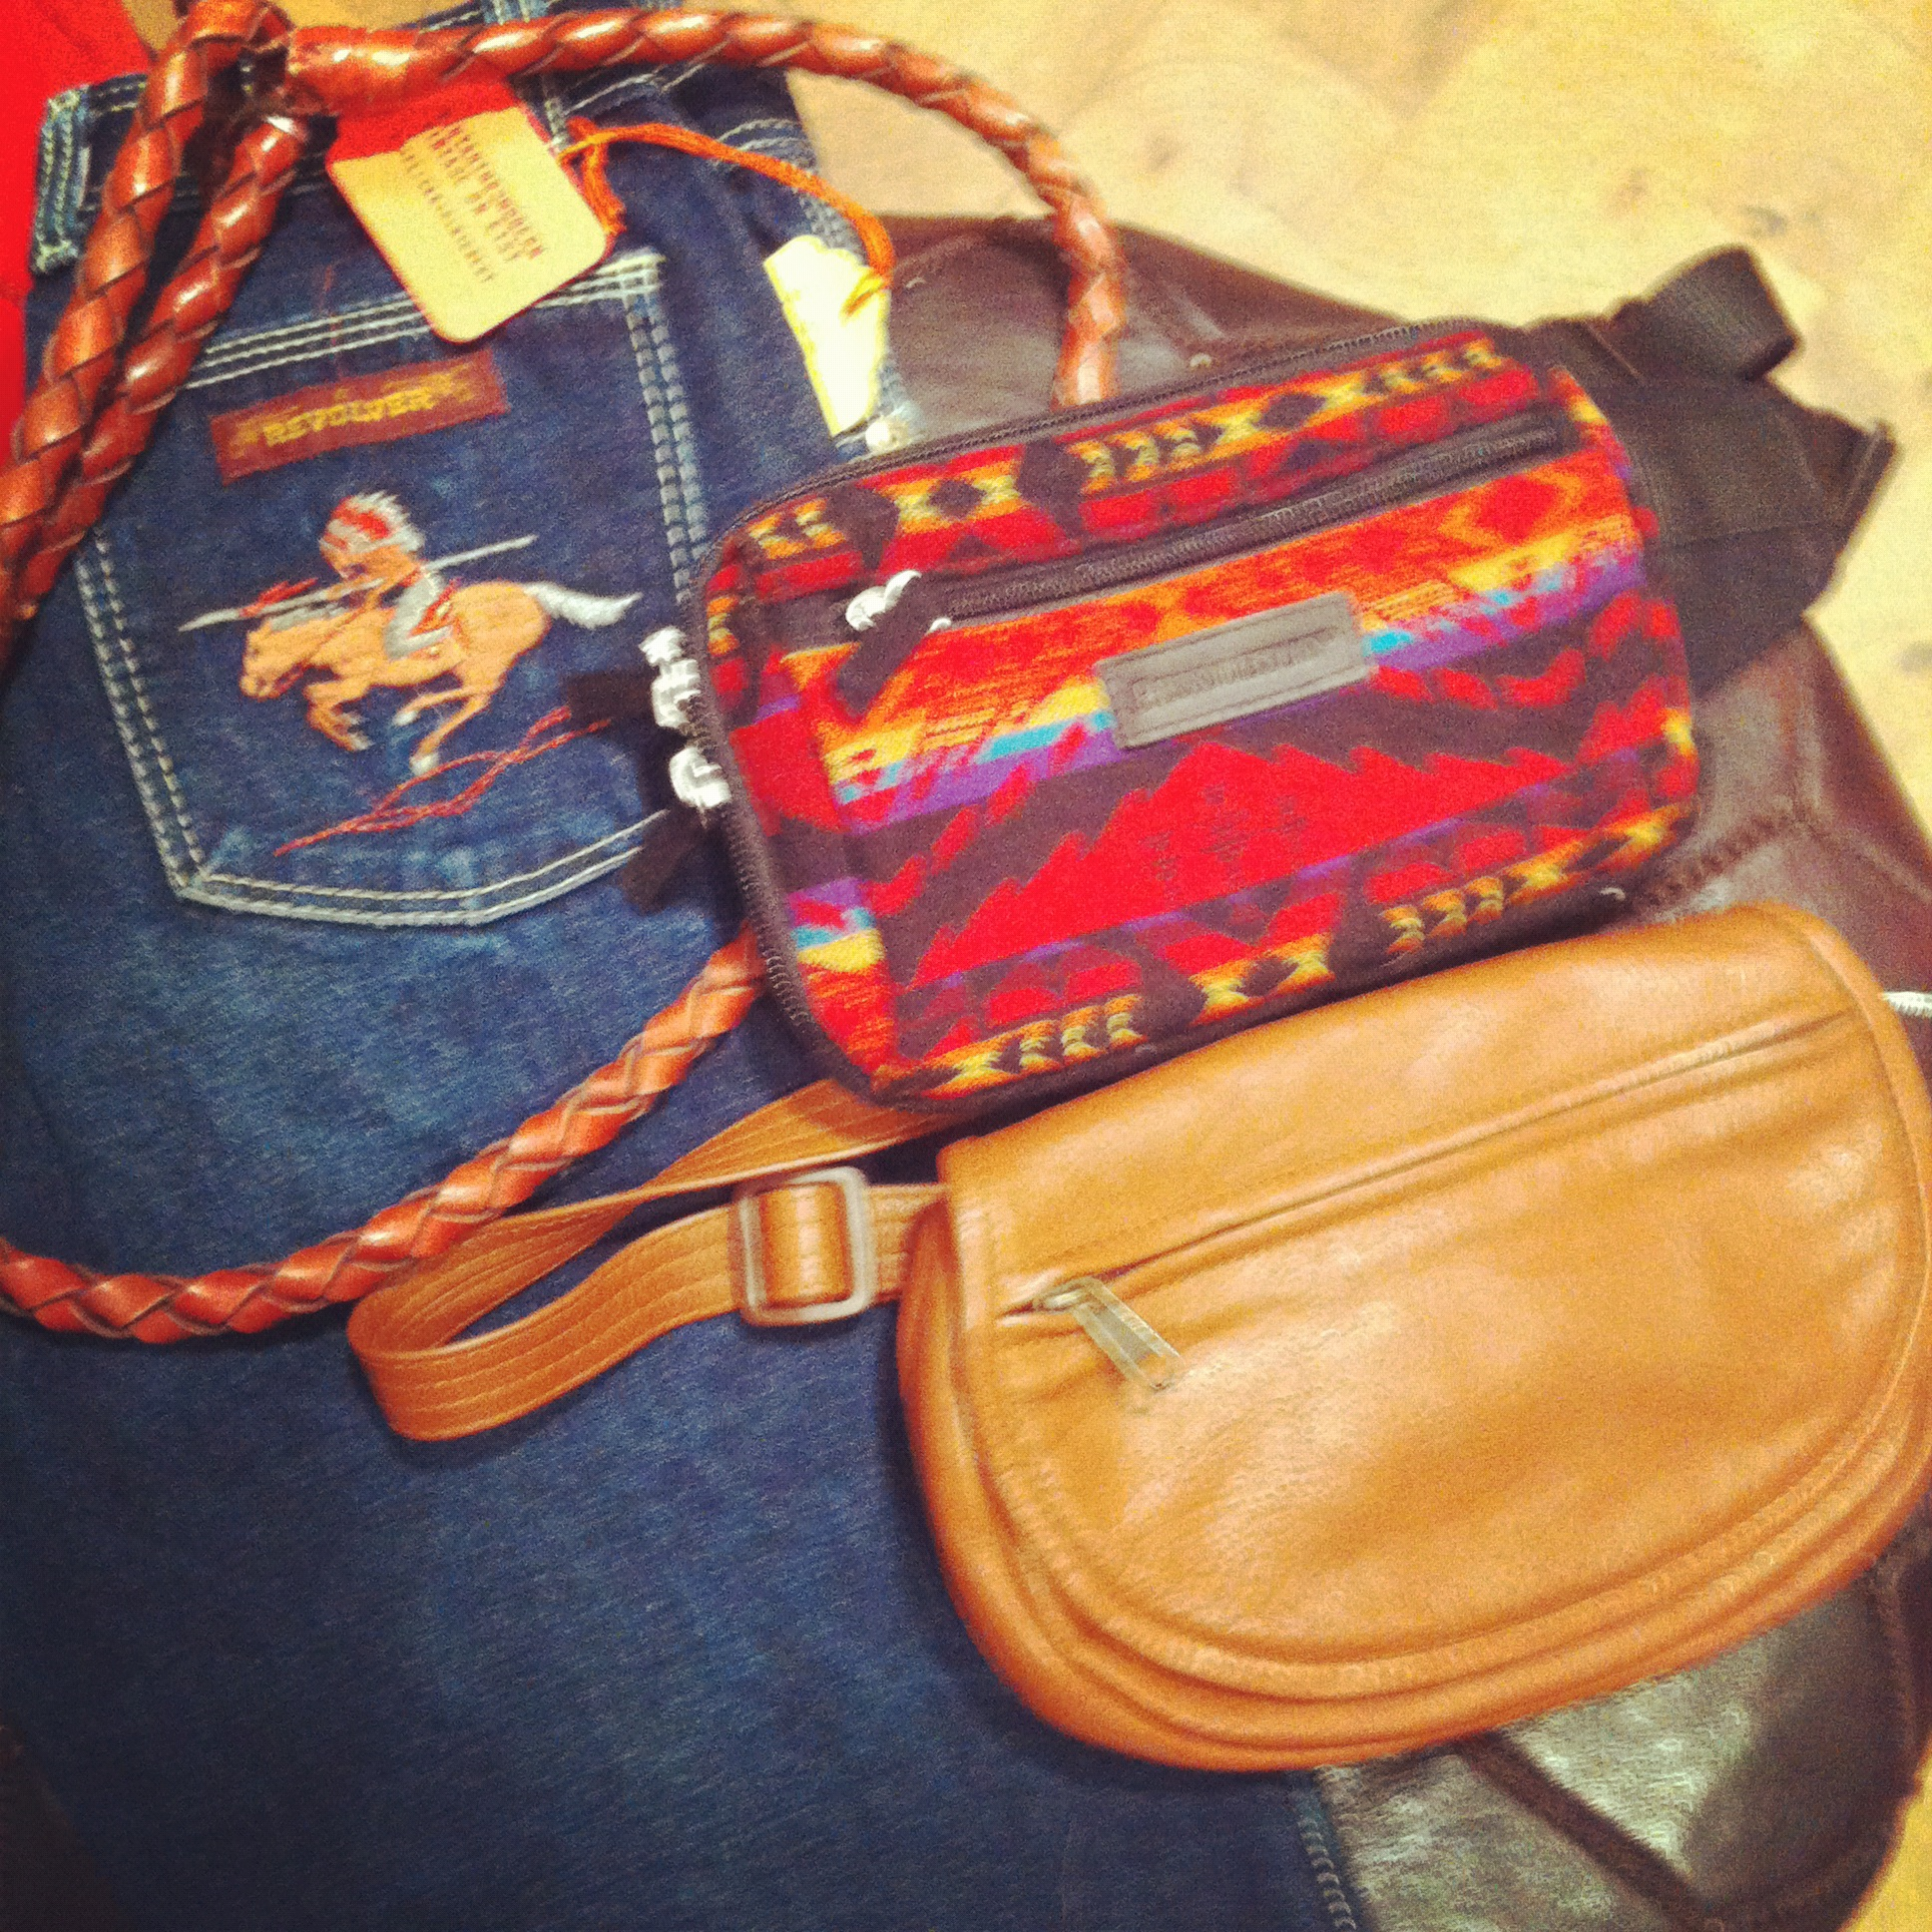 Southwestern influence - Pendleton fanny pack, cowboy jeans